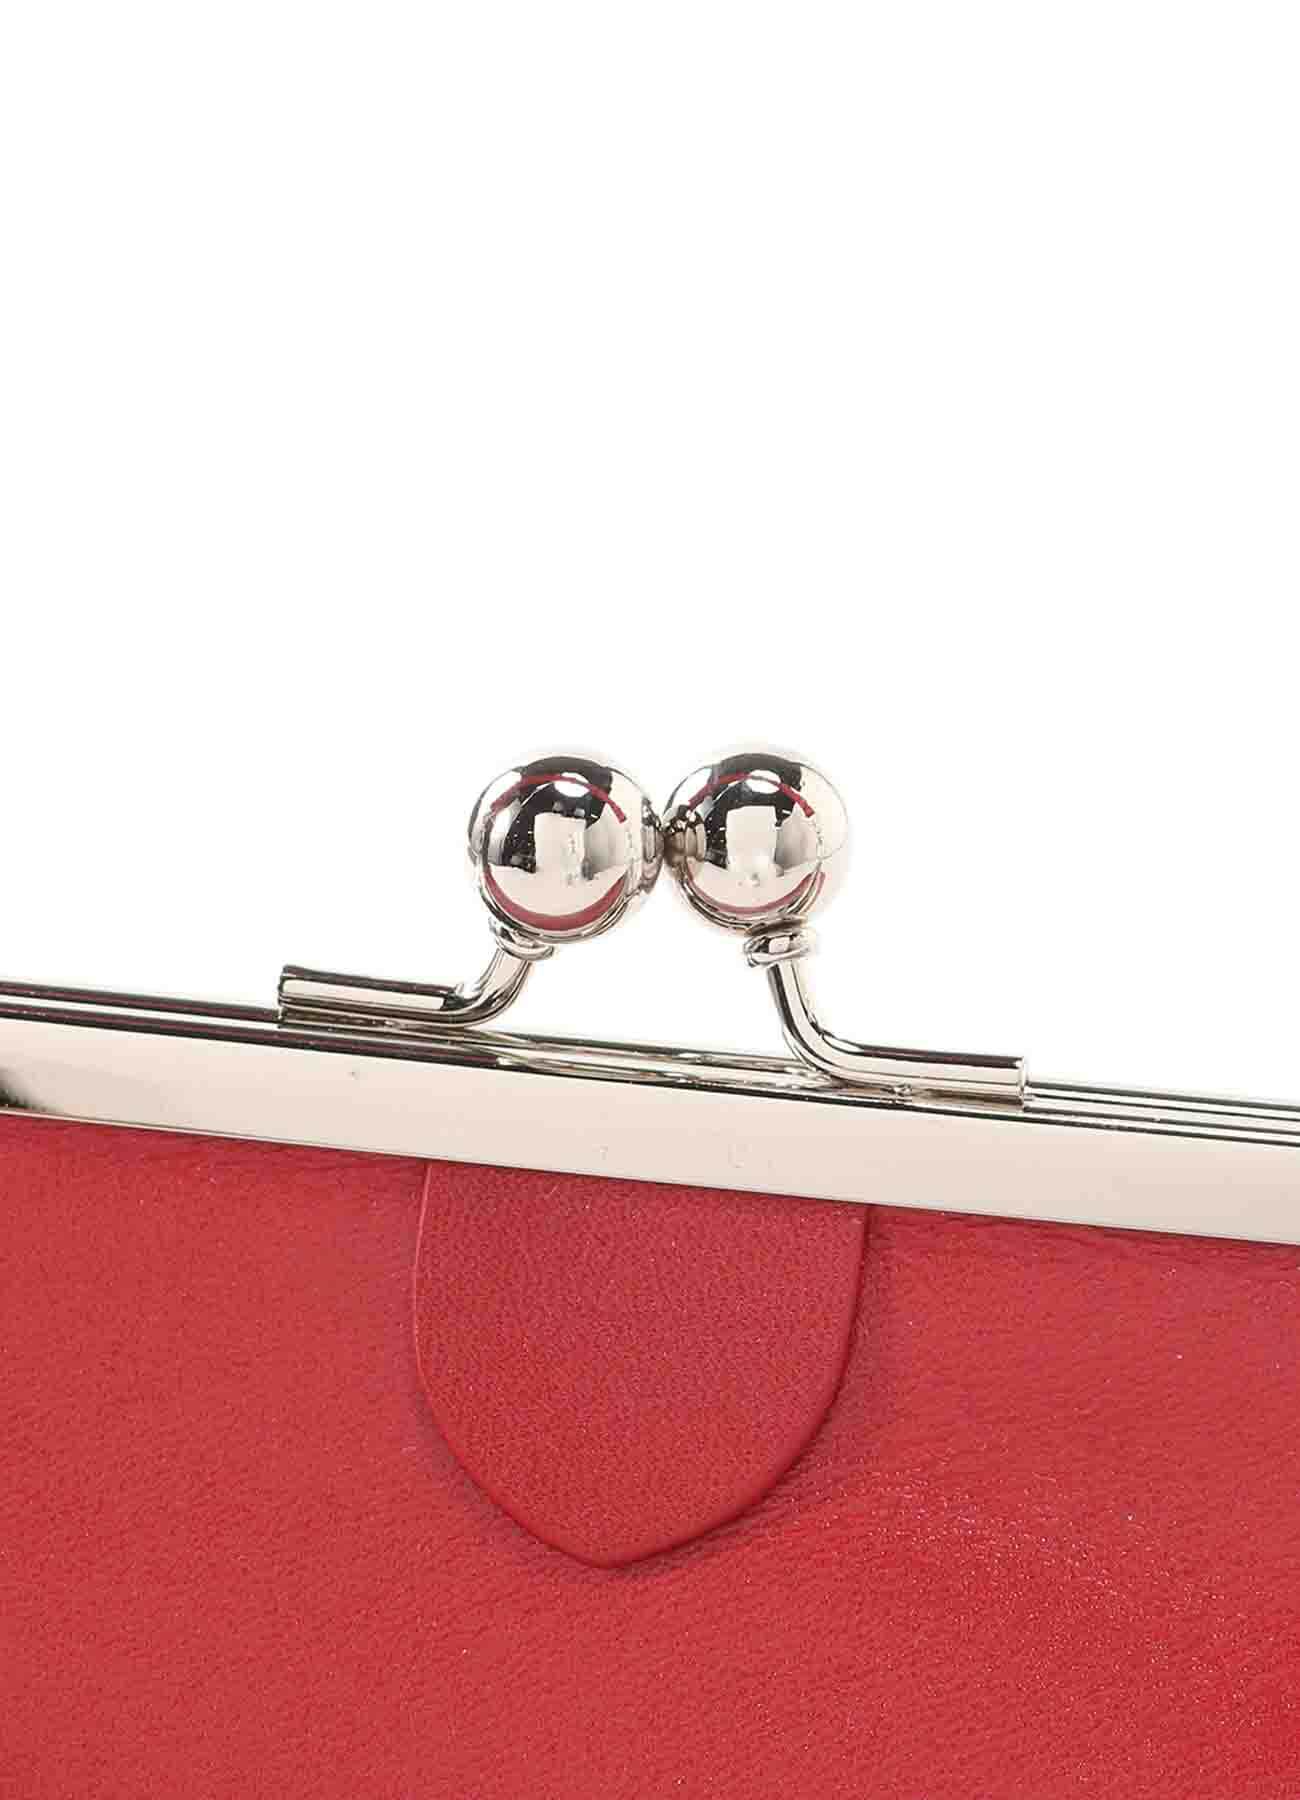 SOFT LEATHER CLASP POUCH